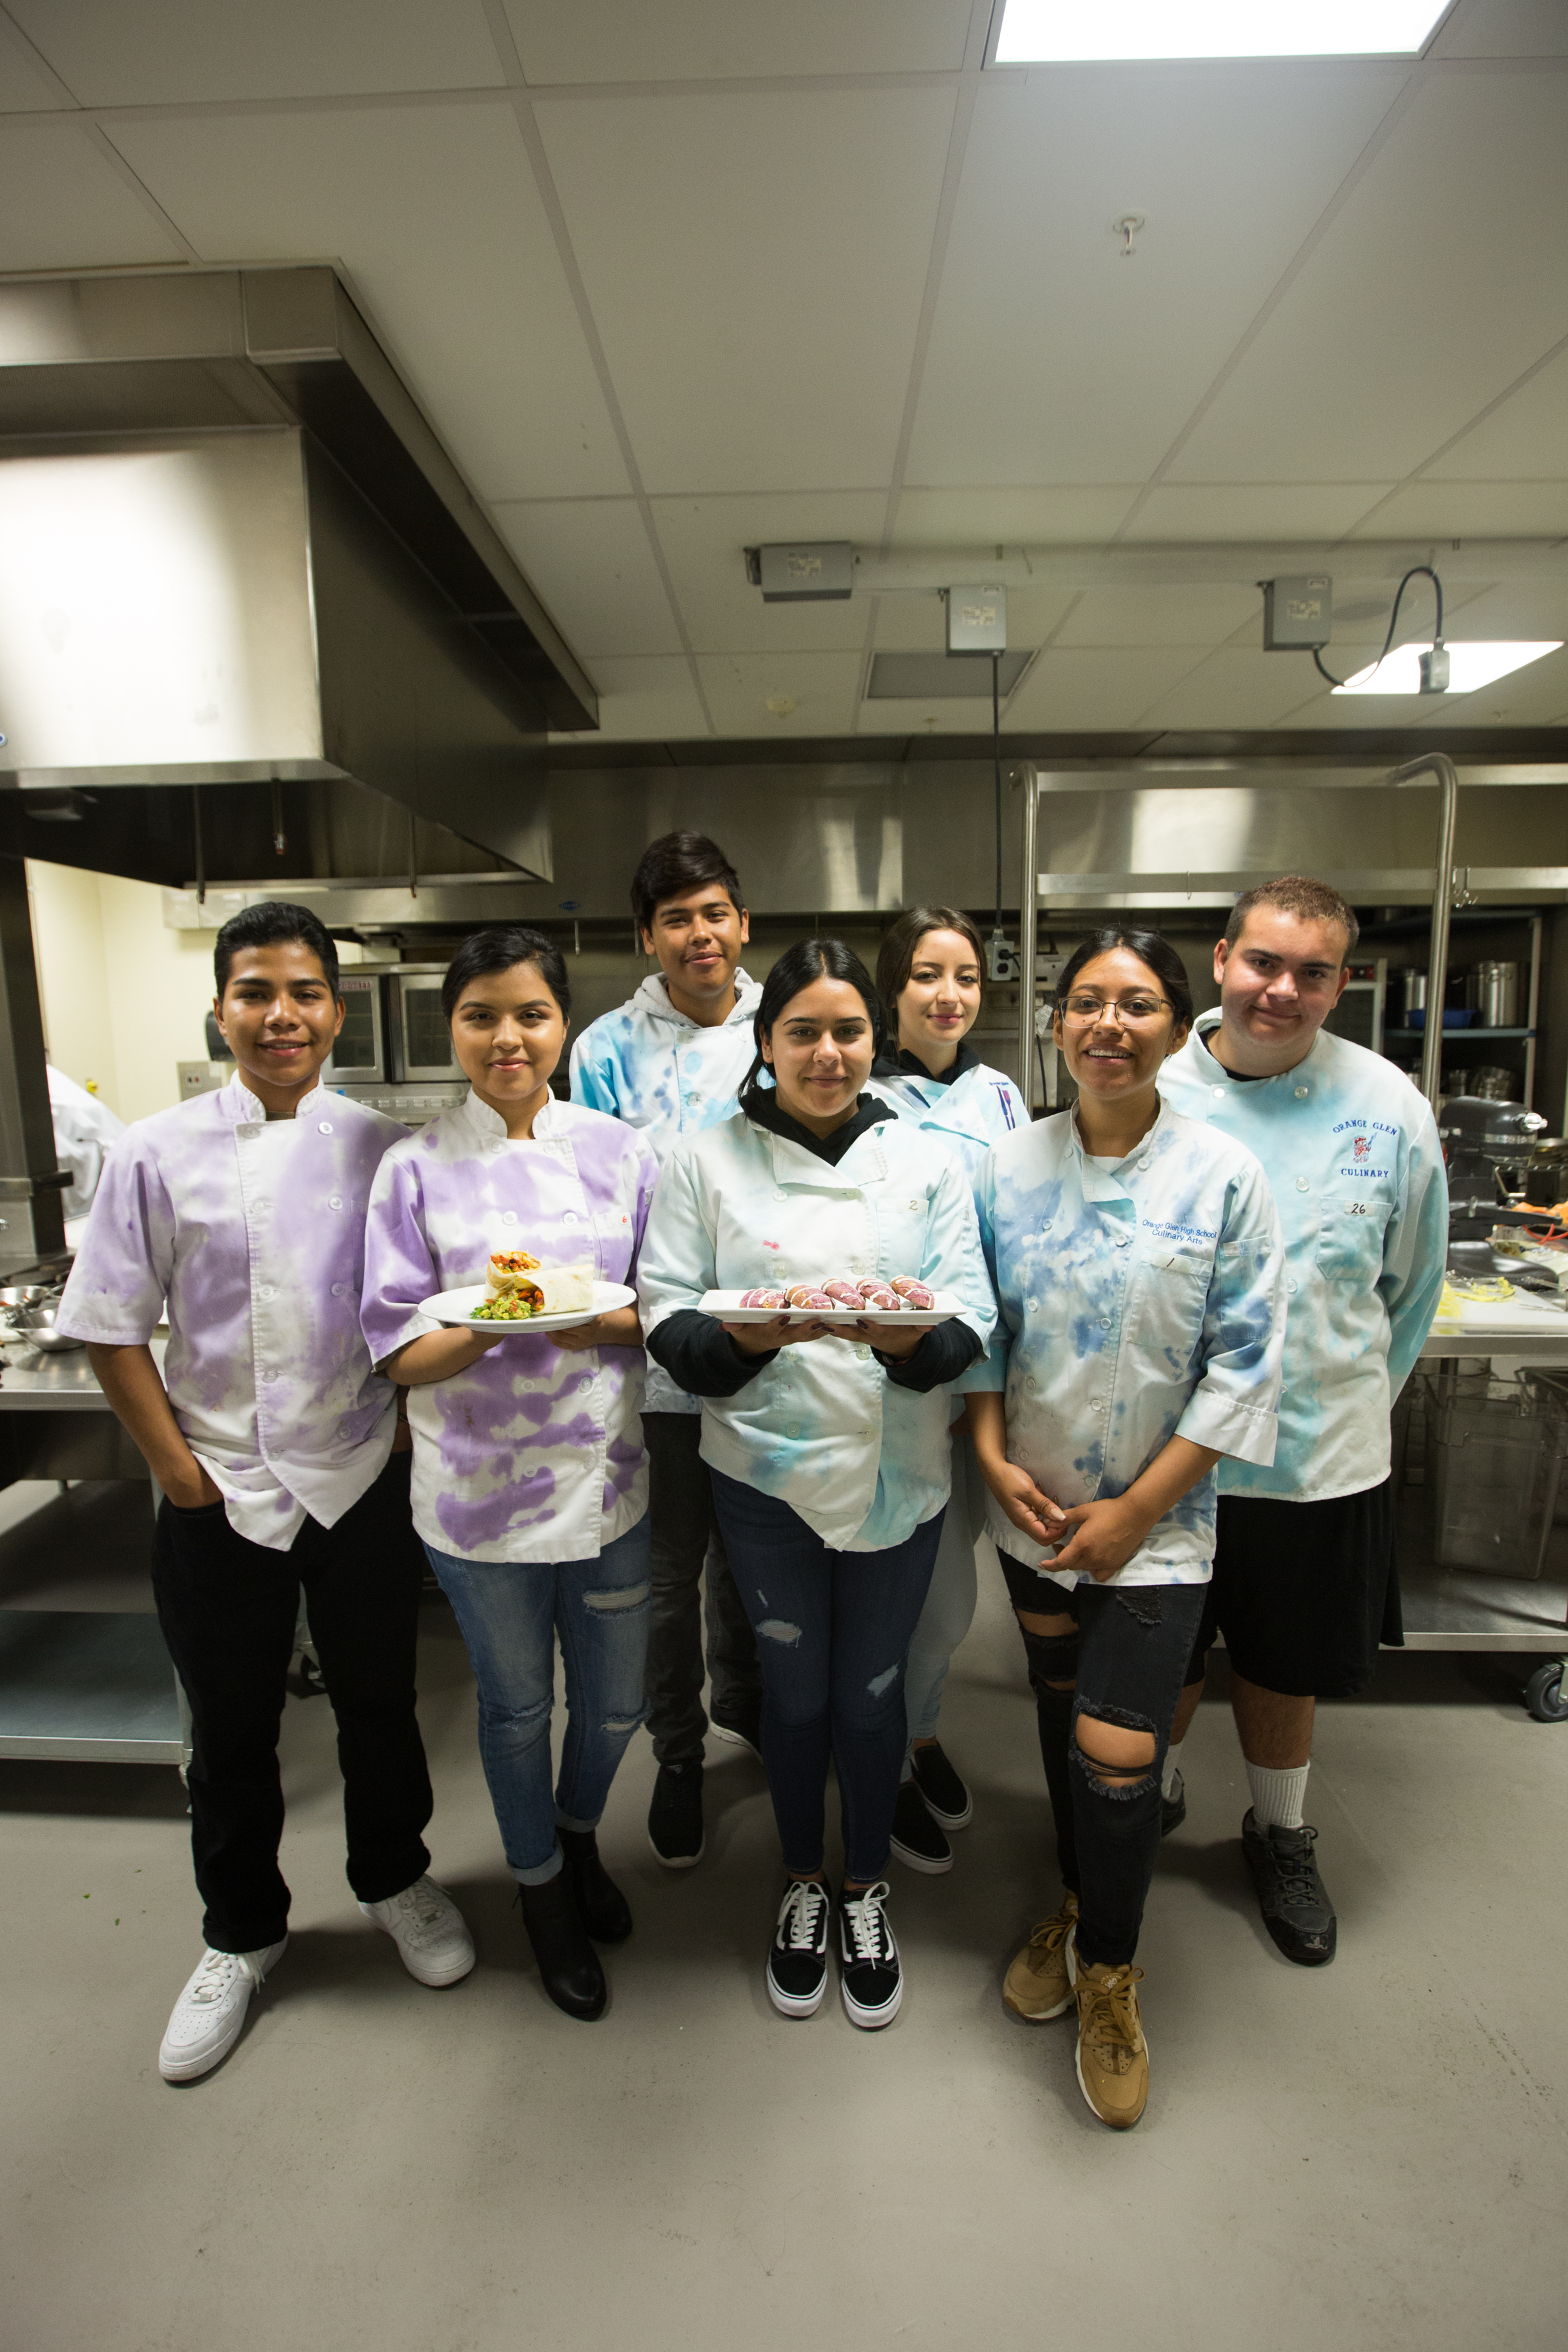 Orange Glen High School students make dishes for local restaurants and Uber eats for a class project Tuesday in Escondido. Pictured left to right: Ivan Soria, Monica Luna, Jose Fabian, Celia Delatorre, Joanna Payan, Alma Anguiano, Alec Ellsworth.